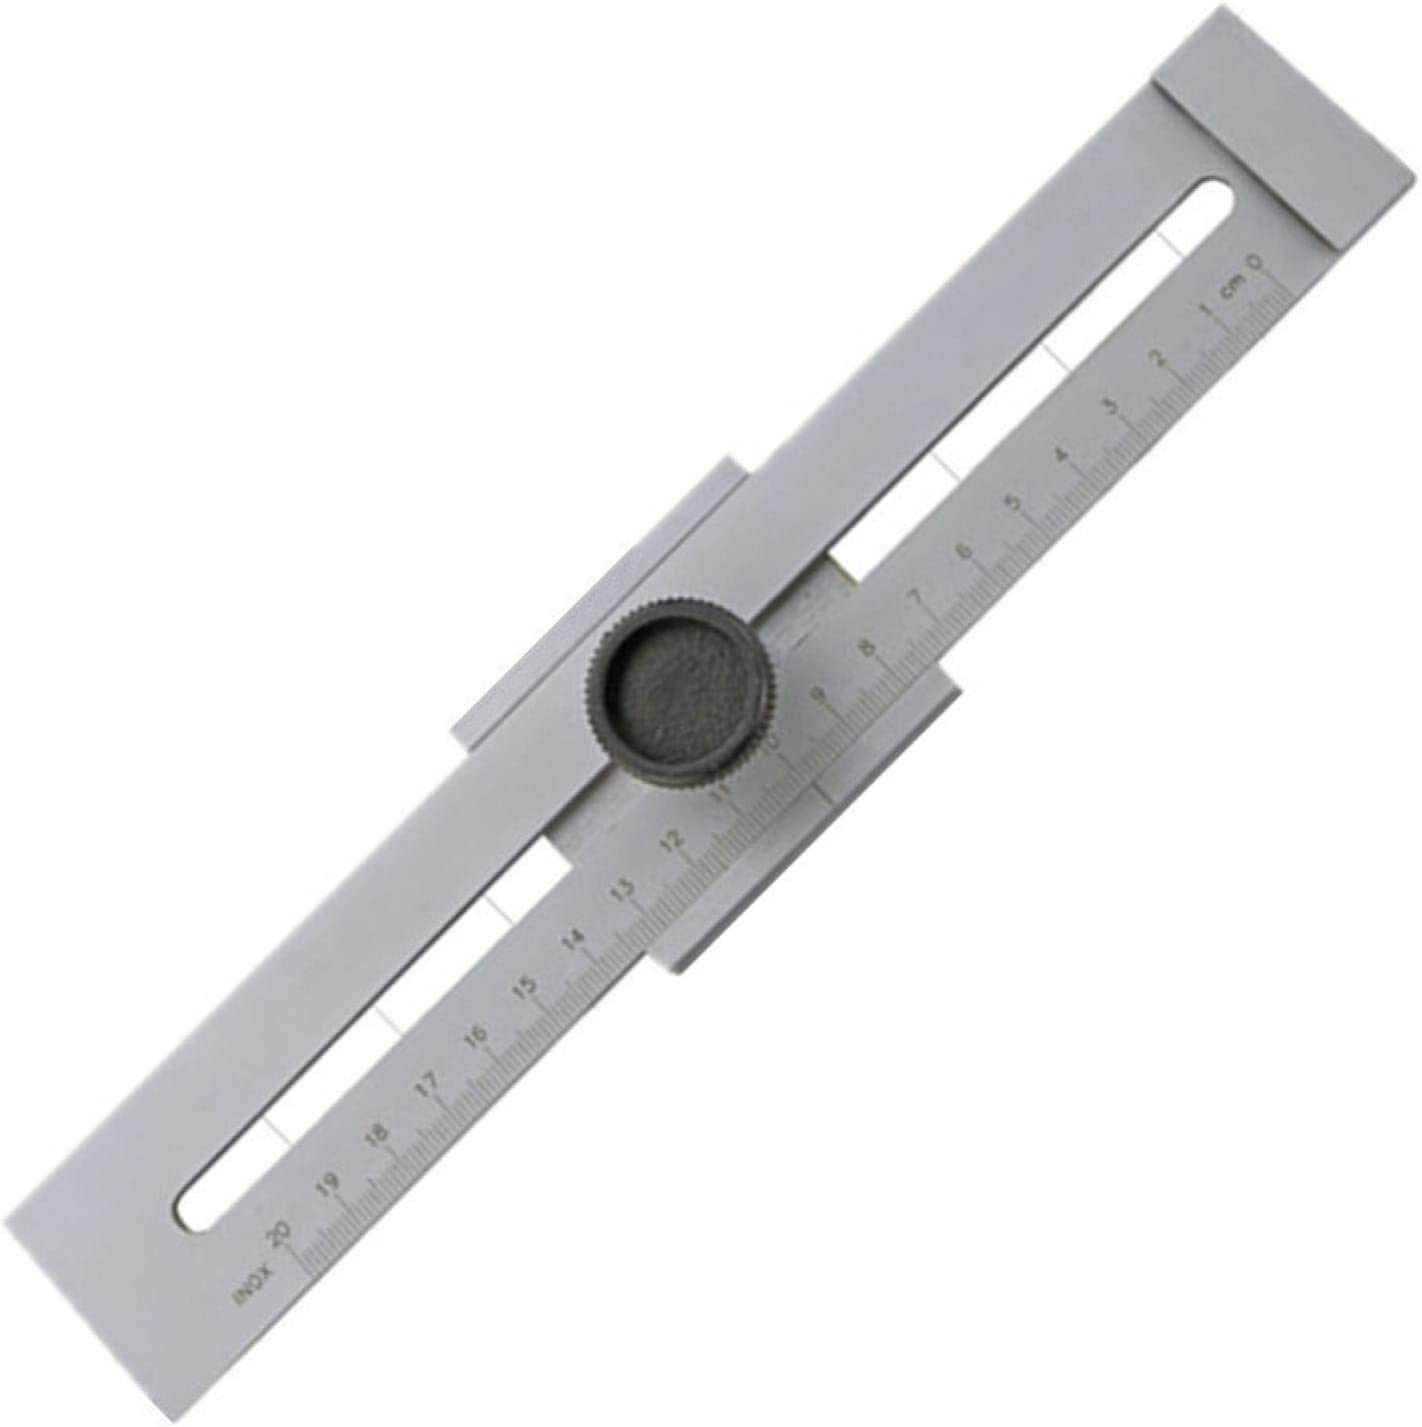 0-200 mm Stainless Steel Industry No. 1 Marking Accuracy Rul Gauge Max 77% OFF High Marker